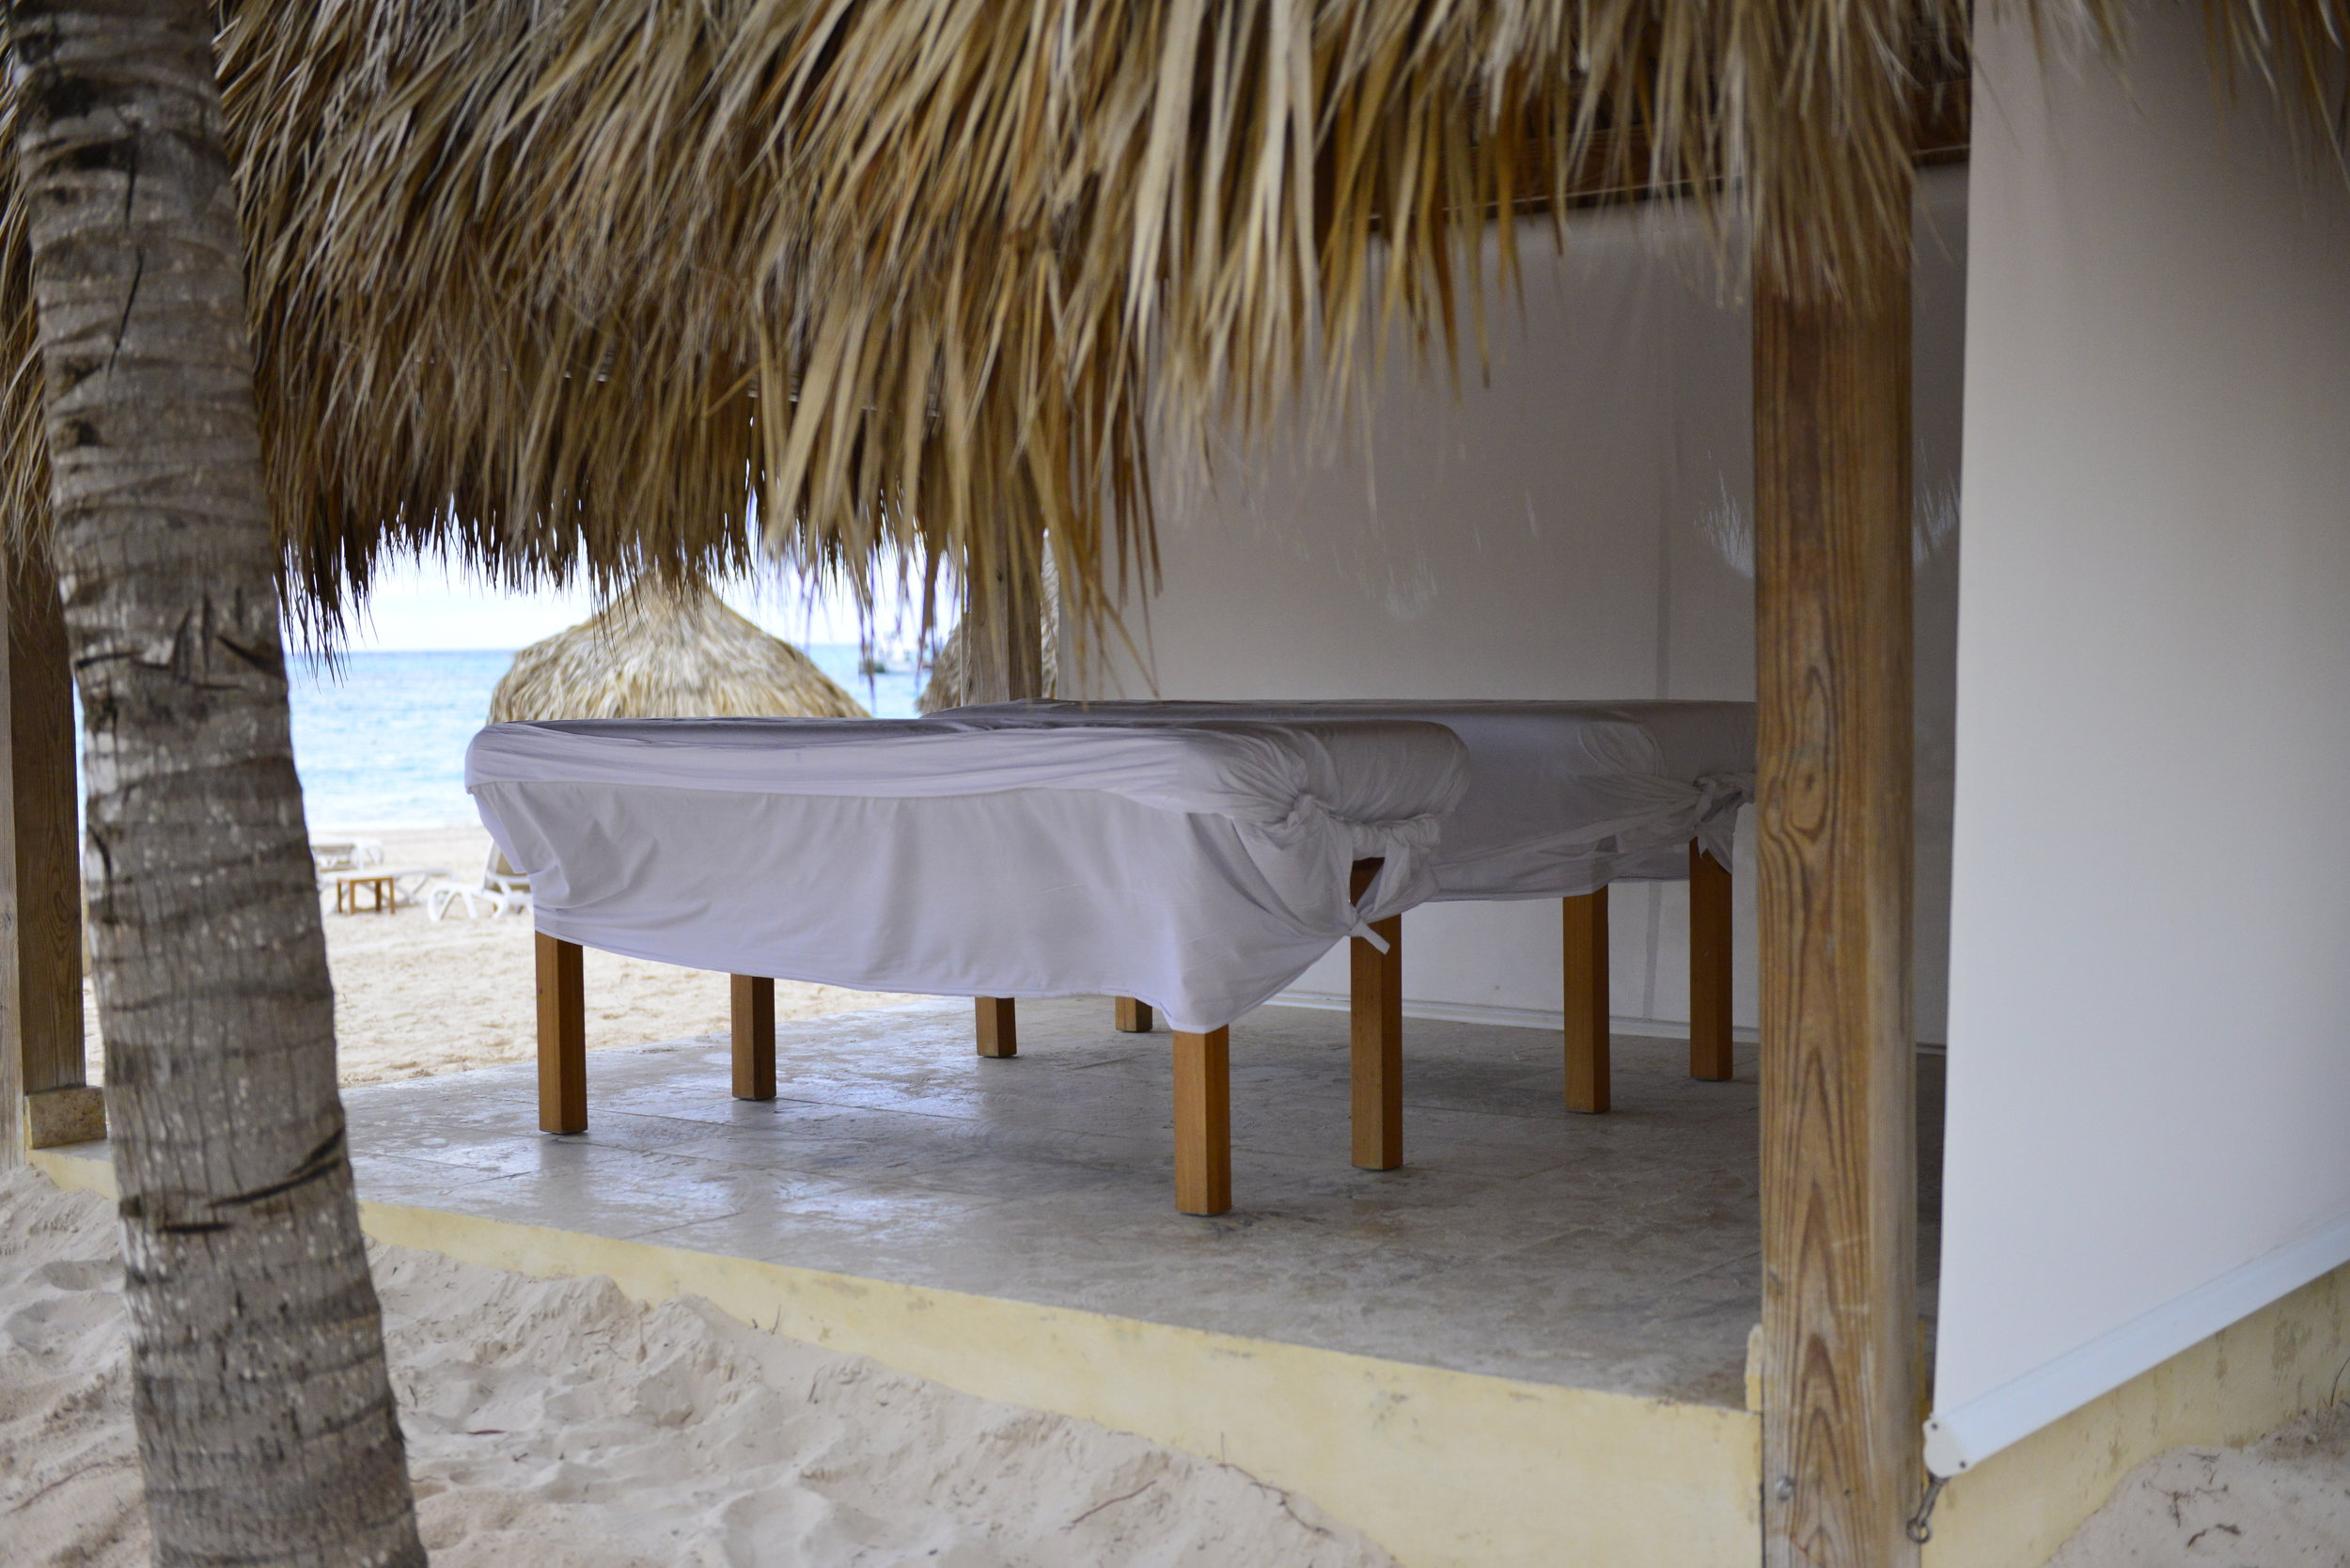 melia caribe tropical punta cana - gorgeous beachside massage tables - dana chirps - adventure blogger